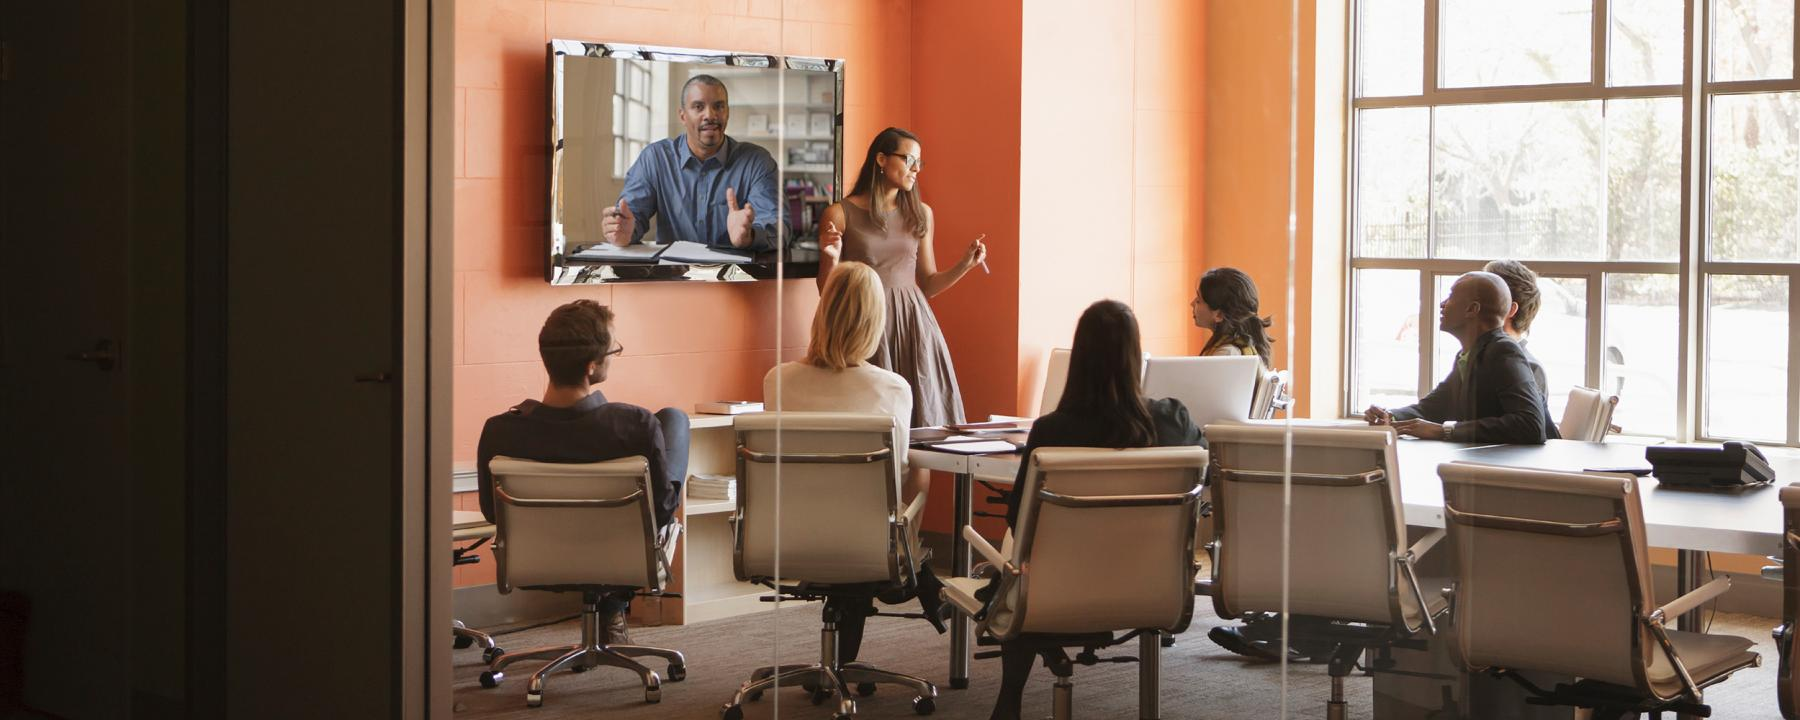 virtual meeting in a conference room